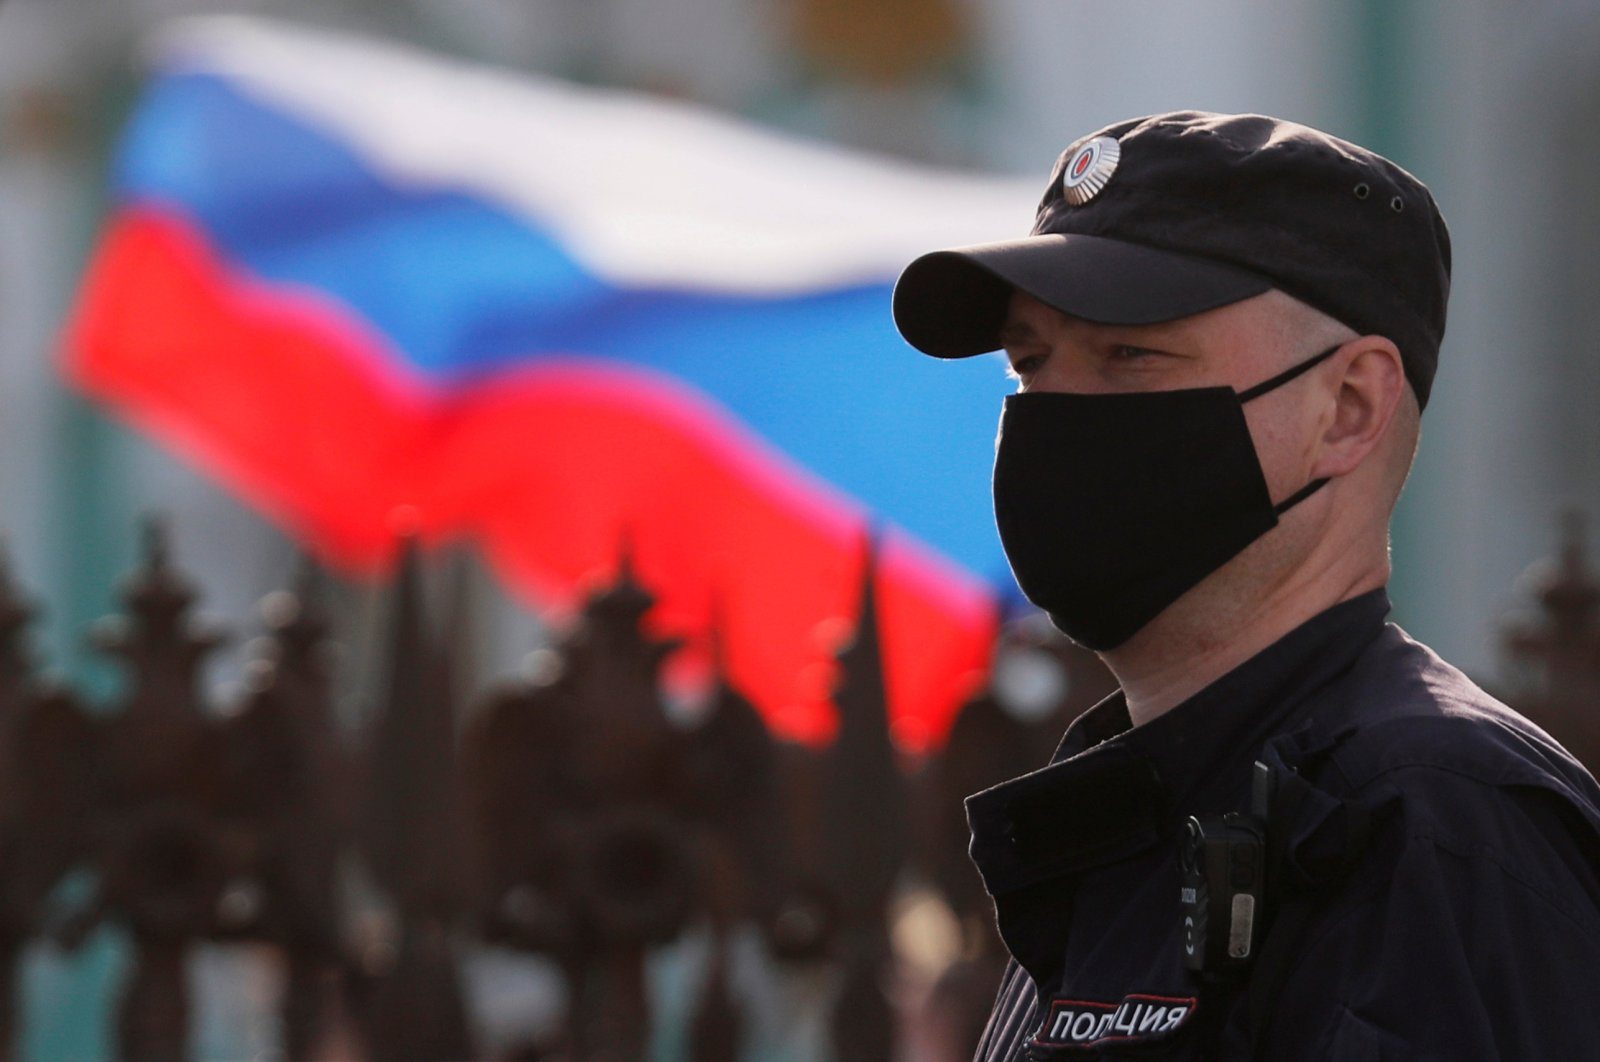 A police officer wearing a protective face mask stands guard at Dvortsovaya Square in Saint Petersburg, Russia June 12, 2020. (Reuters Photo)